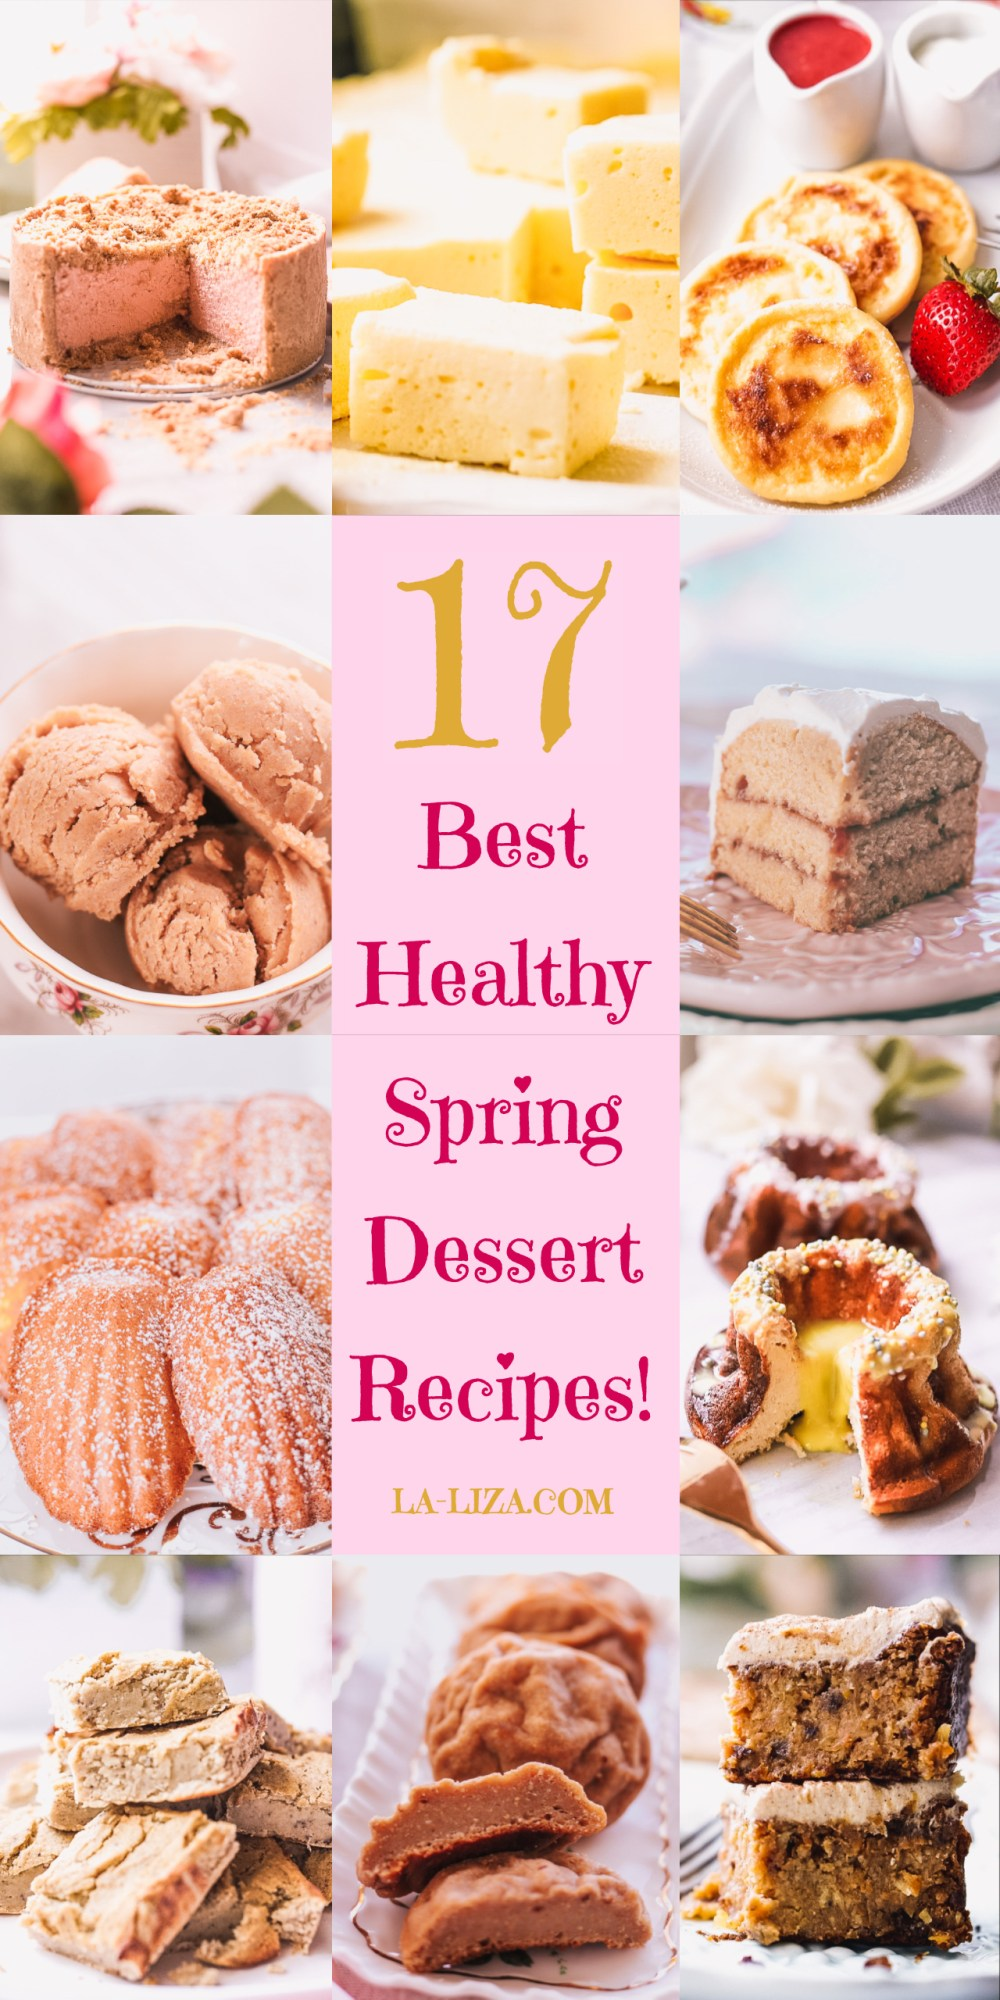 17 Easy Healthy Spring Dessert Recipes!